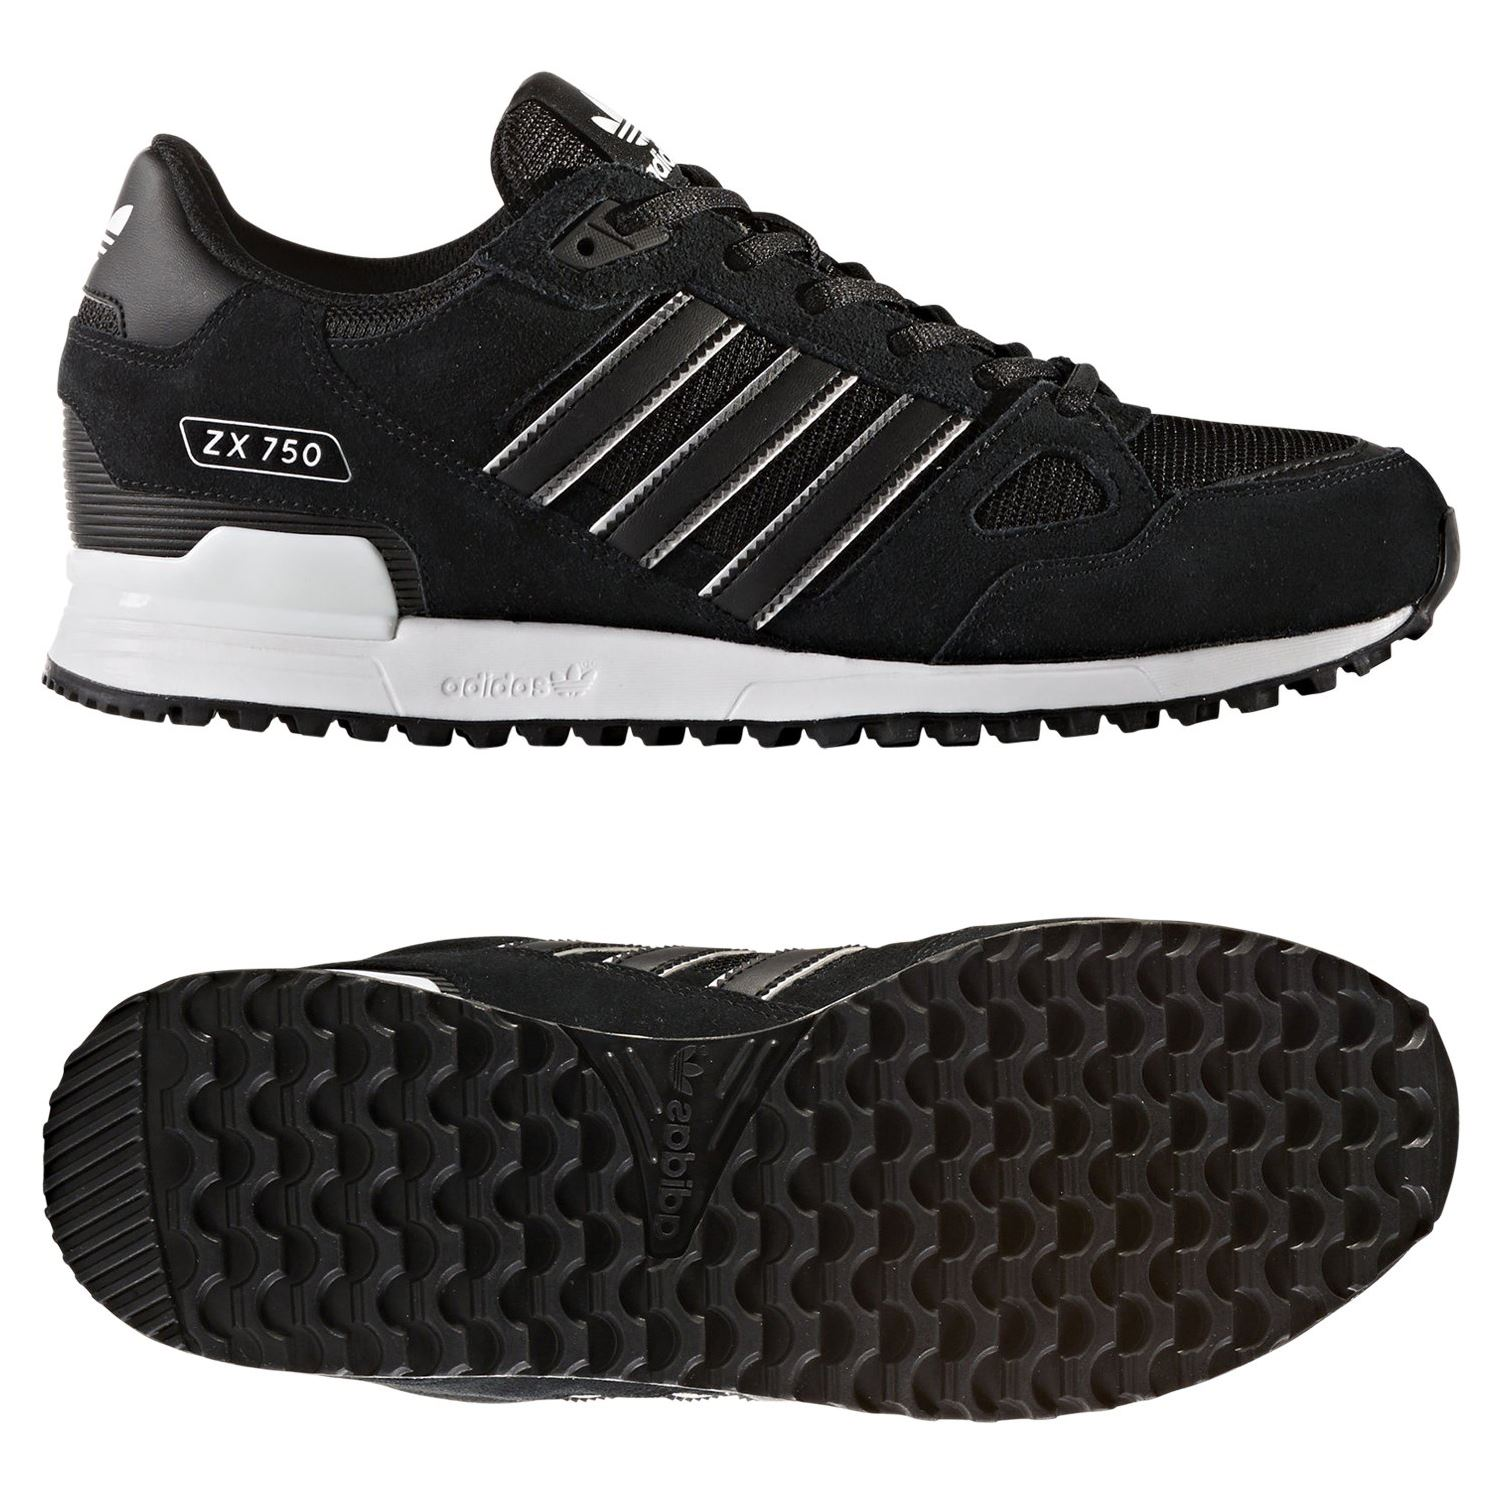 4001d84bf Details about adidas ORIGINALS MEN S ZX 750 TRAINERS BLACK SHOES SNEAKERS  RETRO 90S 80S RARE